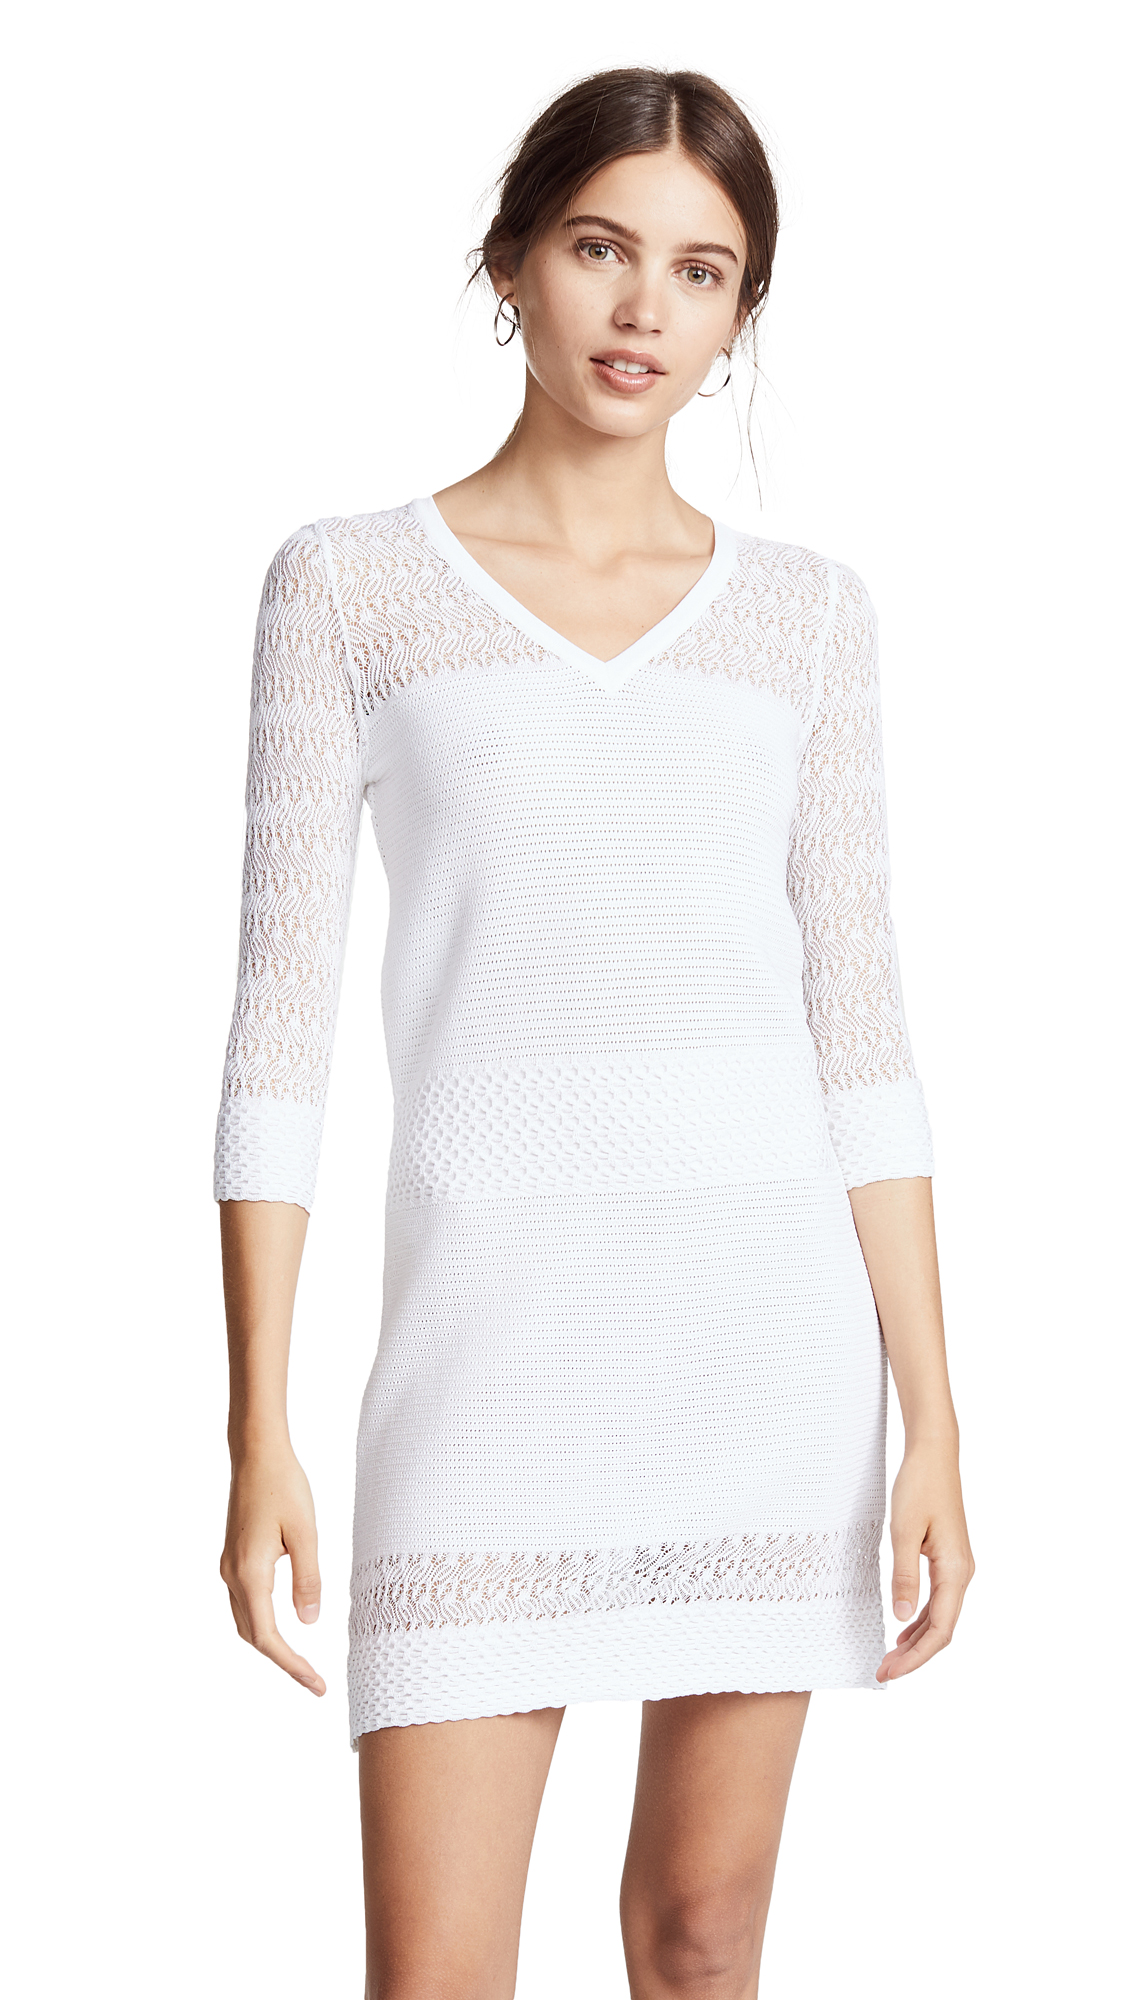 Boutique Moschino 3/4 Sleeve Crochet Dress